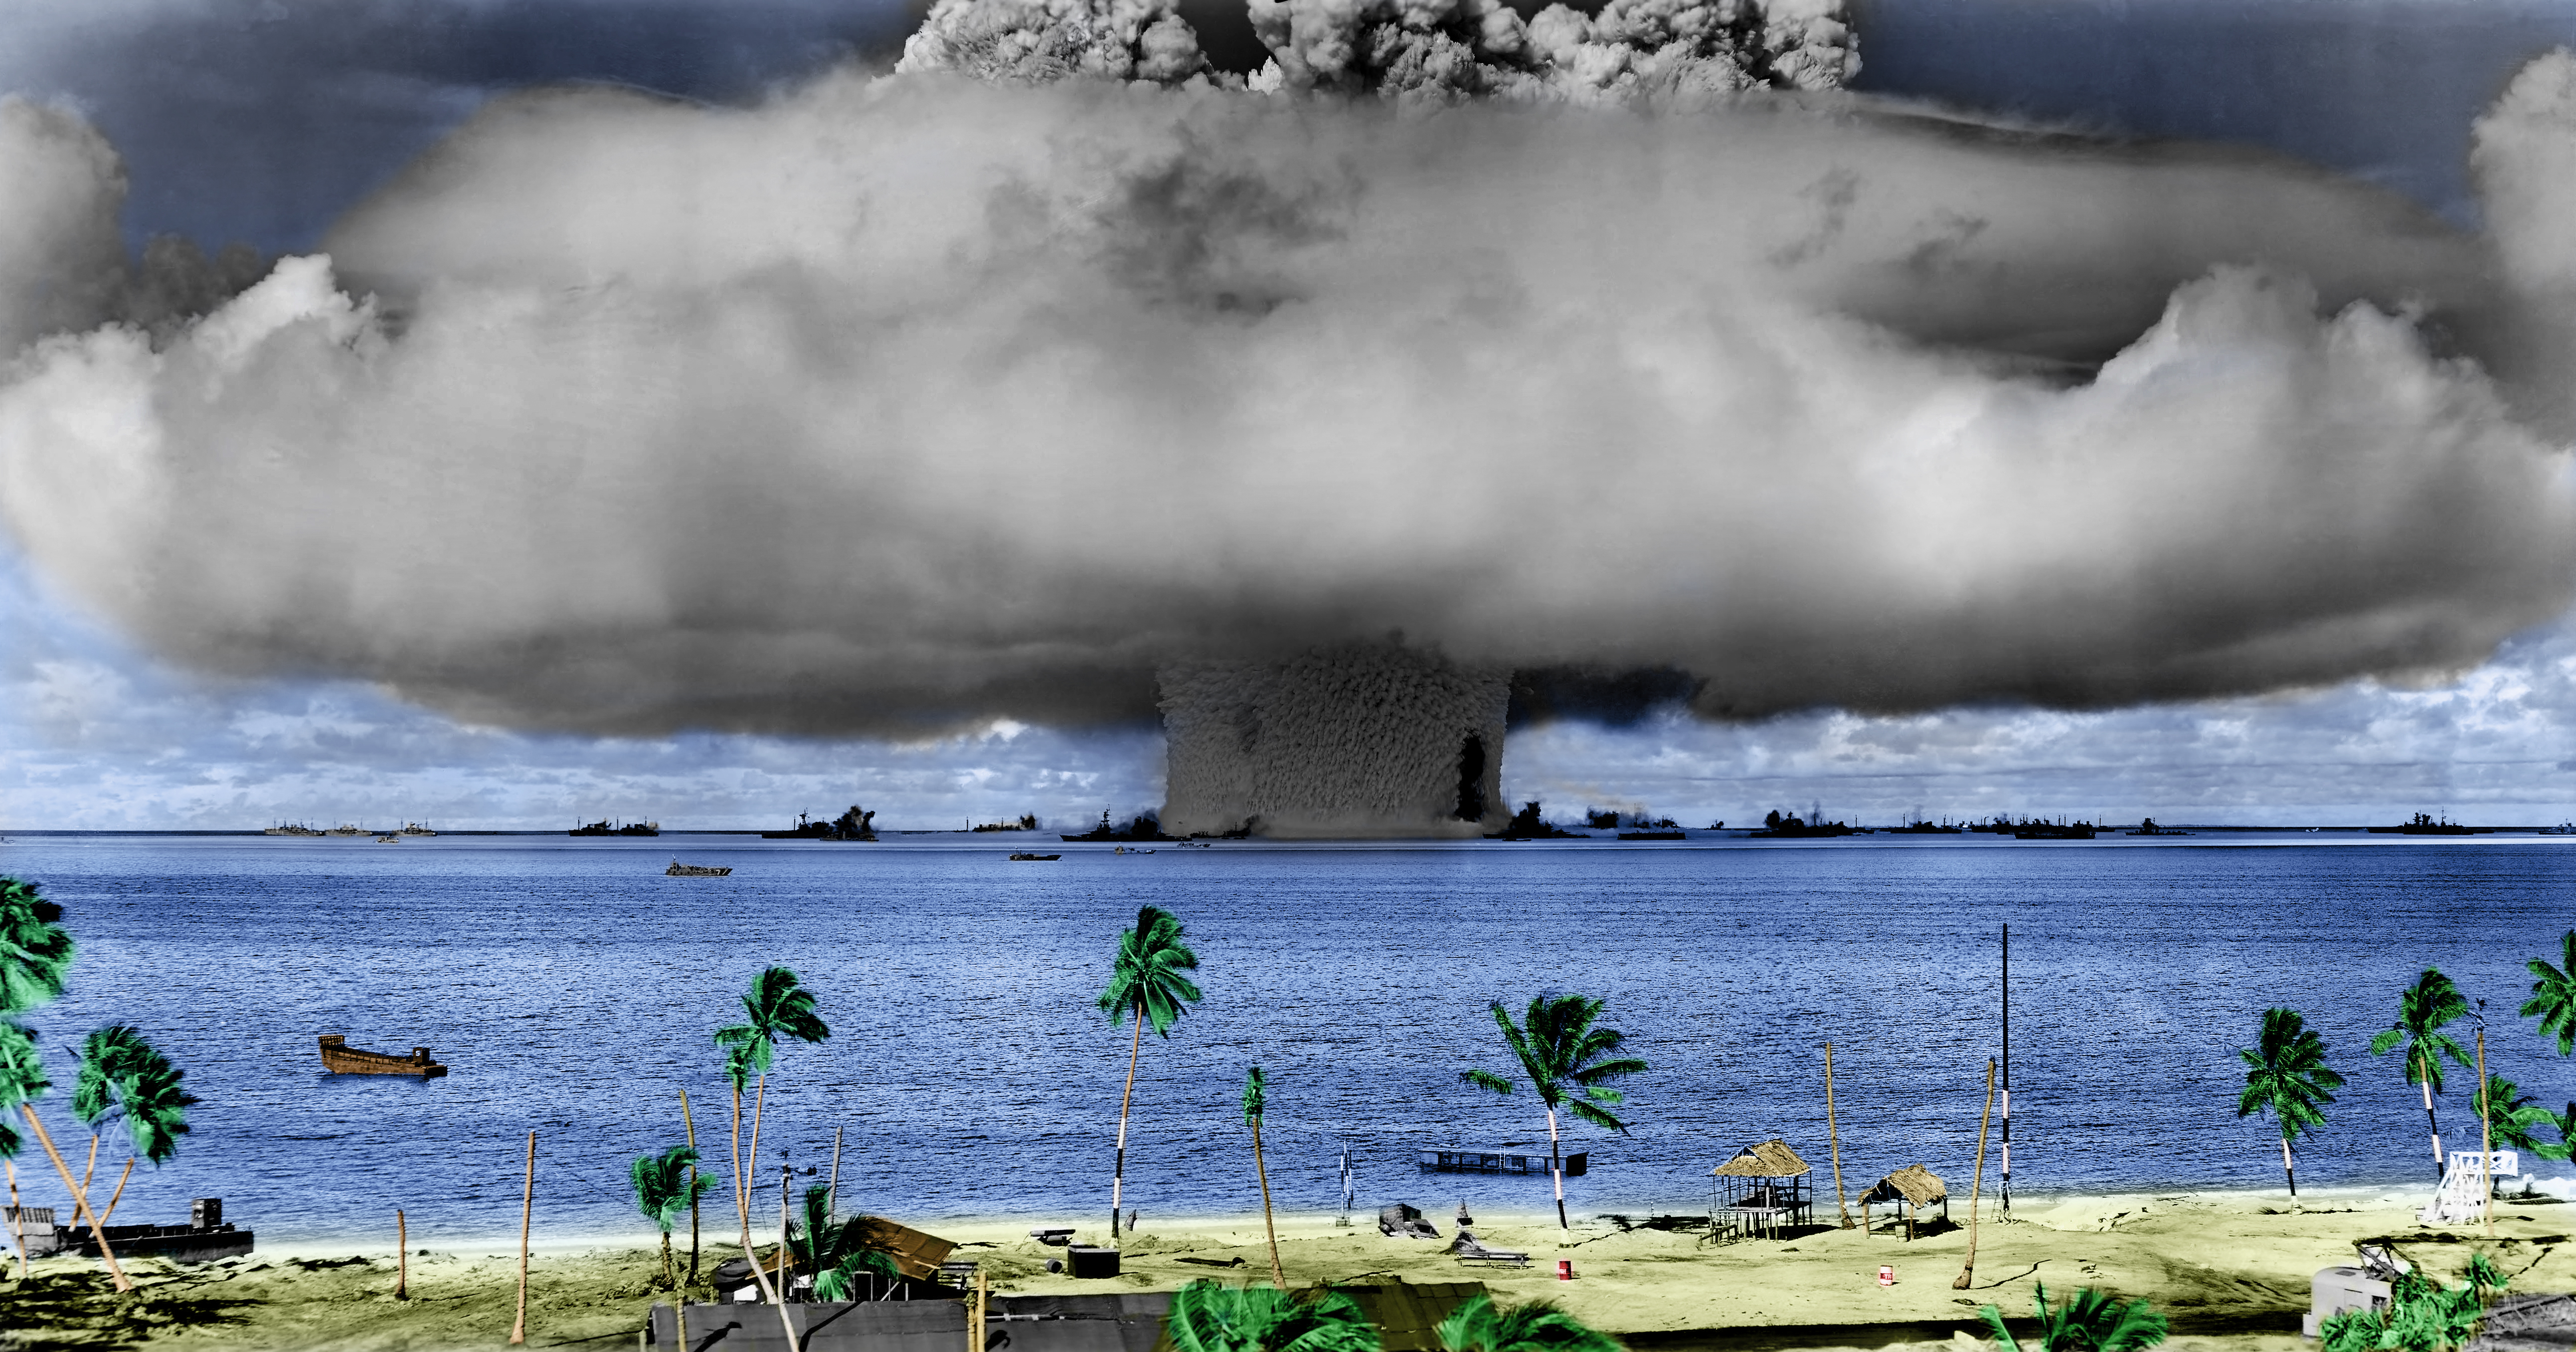 dfdd6ed1fe Scientists Tell Us What Would Happen If North Korea Detonated a Hydrogen  Bomb Underwater